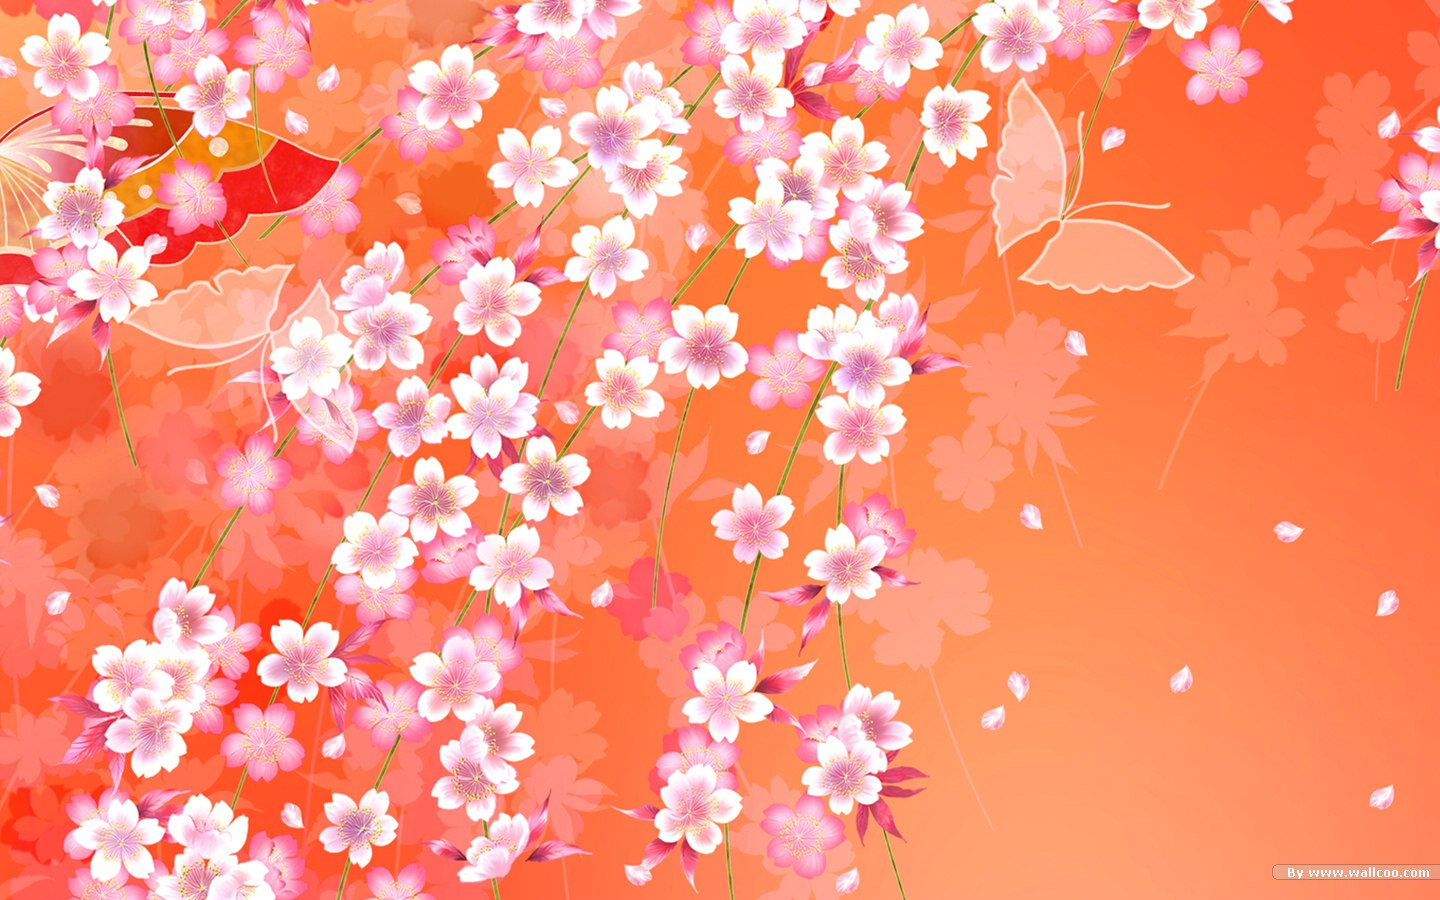 Colors and Patterns in Japanese Kimonos 1440900 NO4 Wallpaper 1440x900